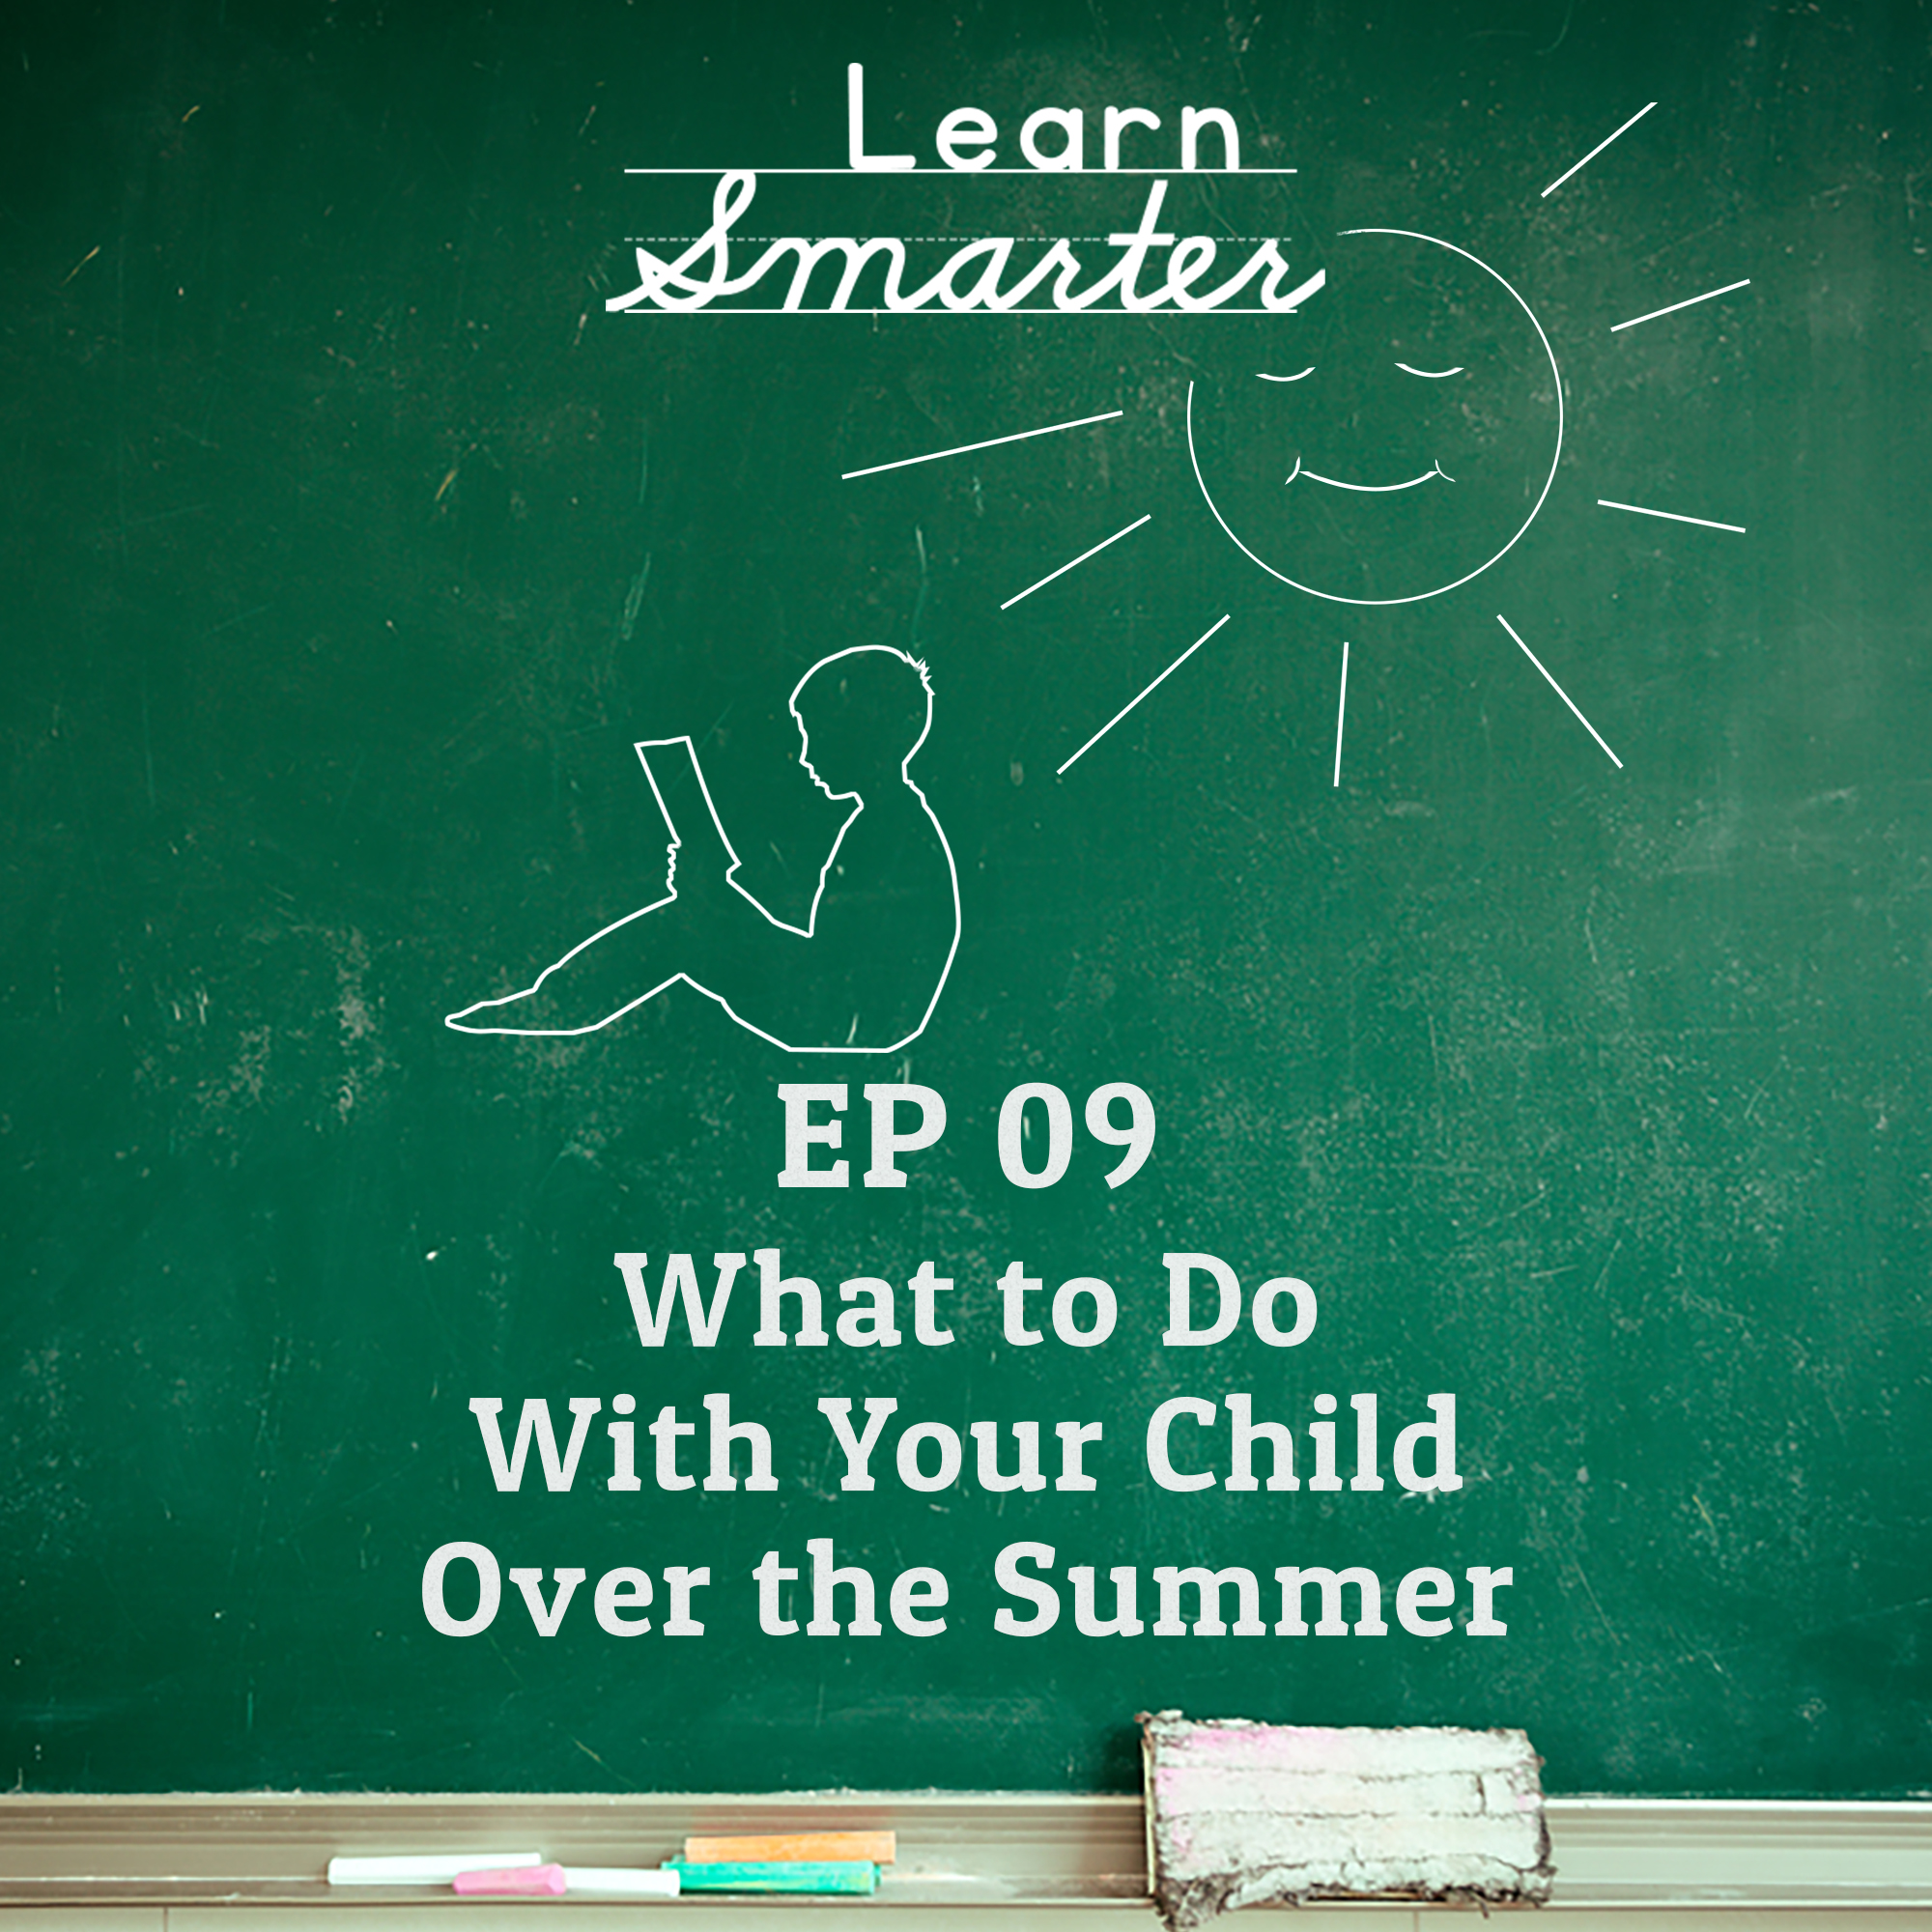 Ep 09: What to do with your child over the summer